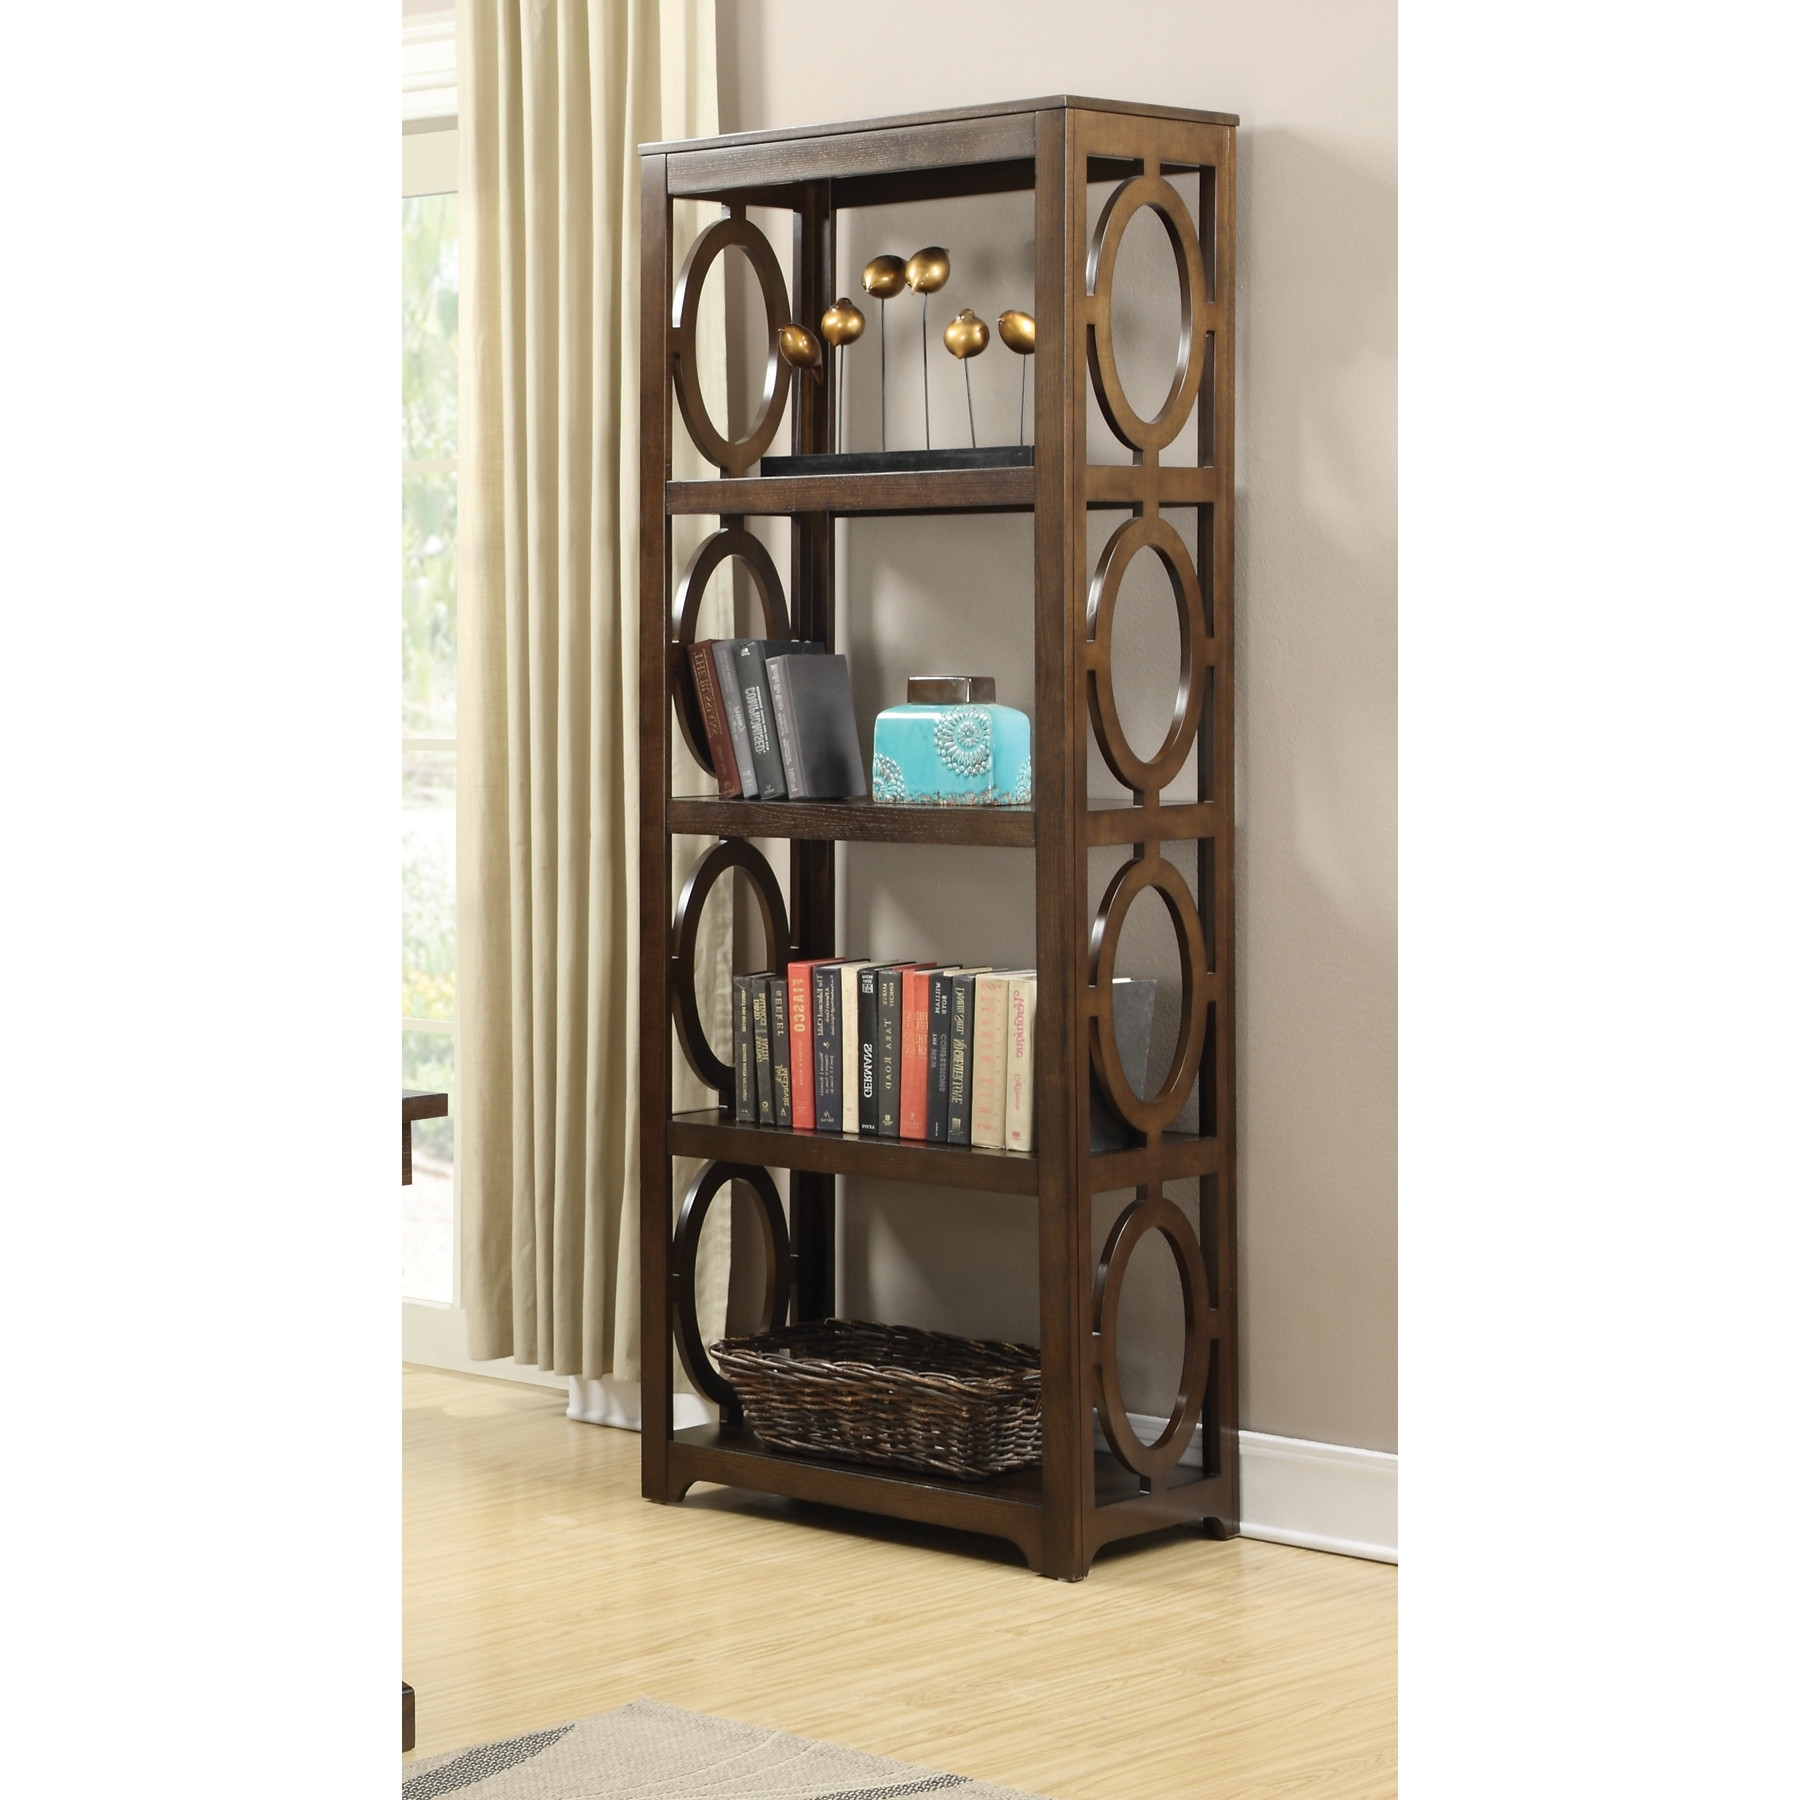 The Appeal Of The Modern Wall Bookcases (View 5 of 15)